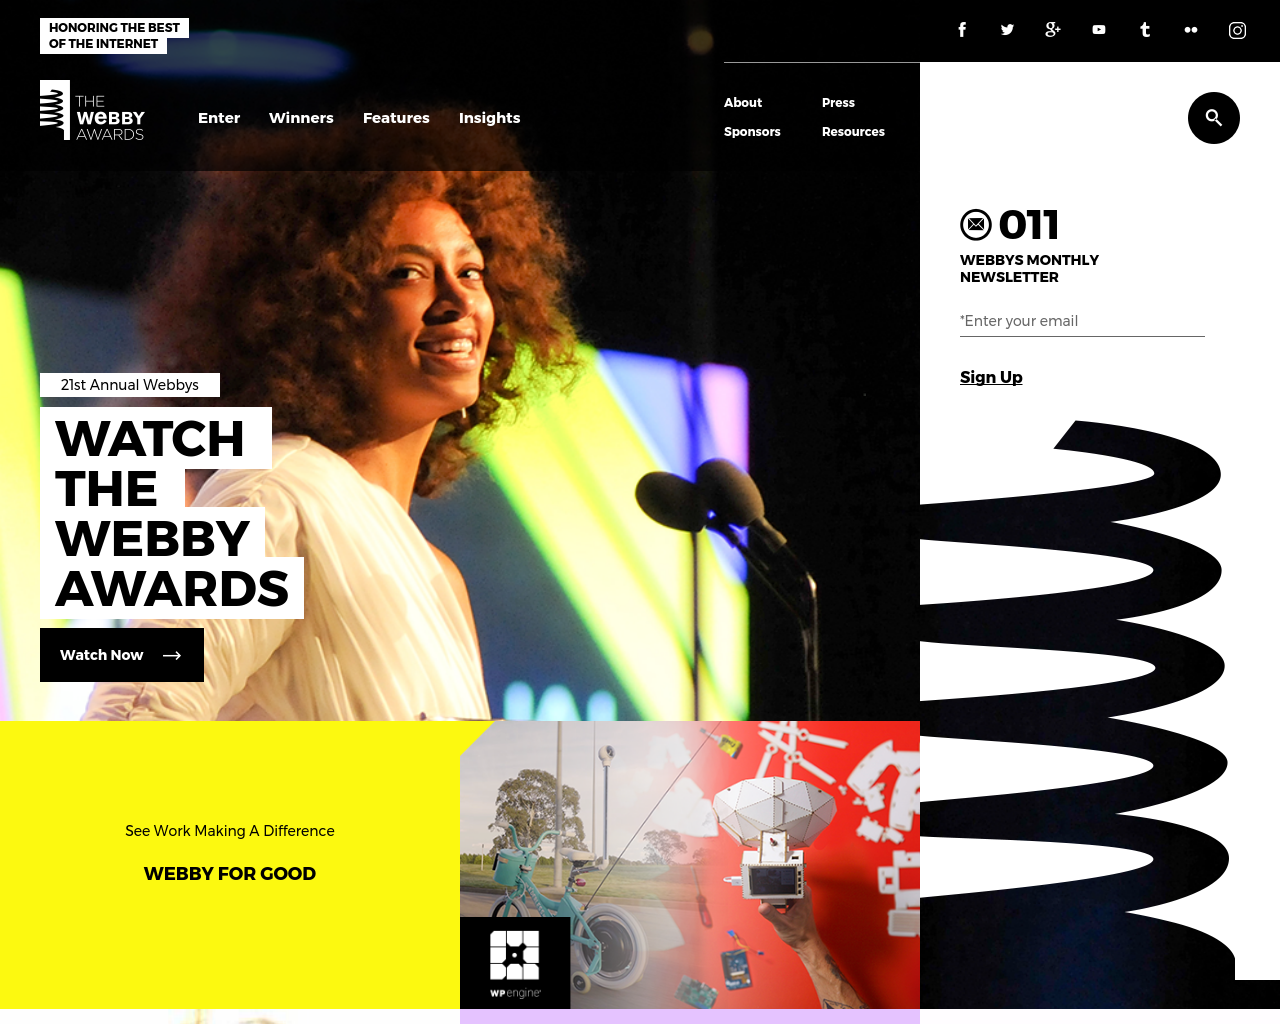 The-Webby-Awards-Advertising-Reviews-Pricing